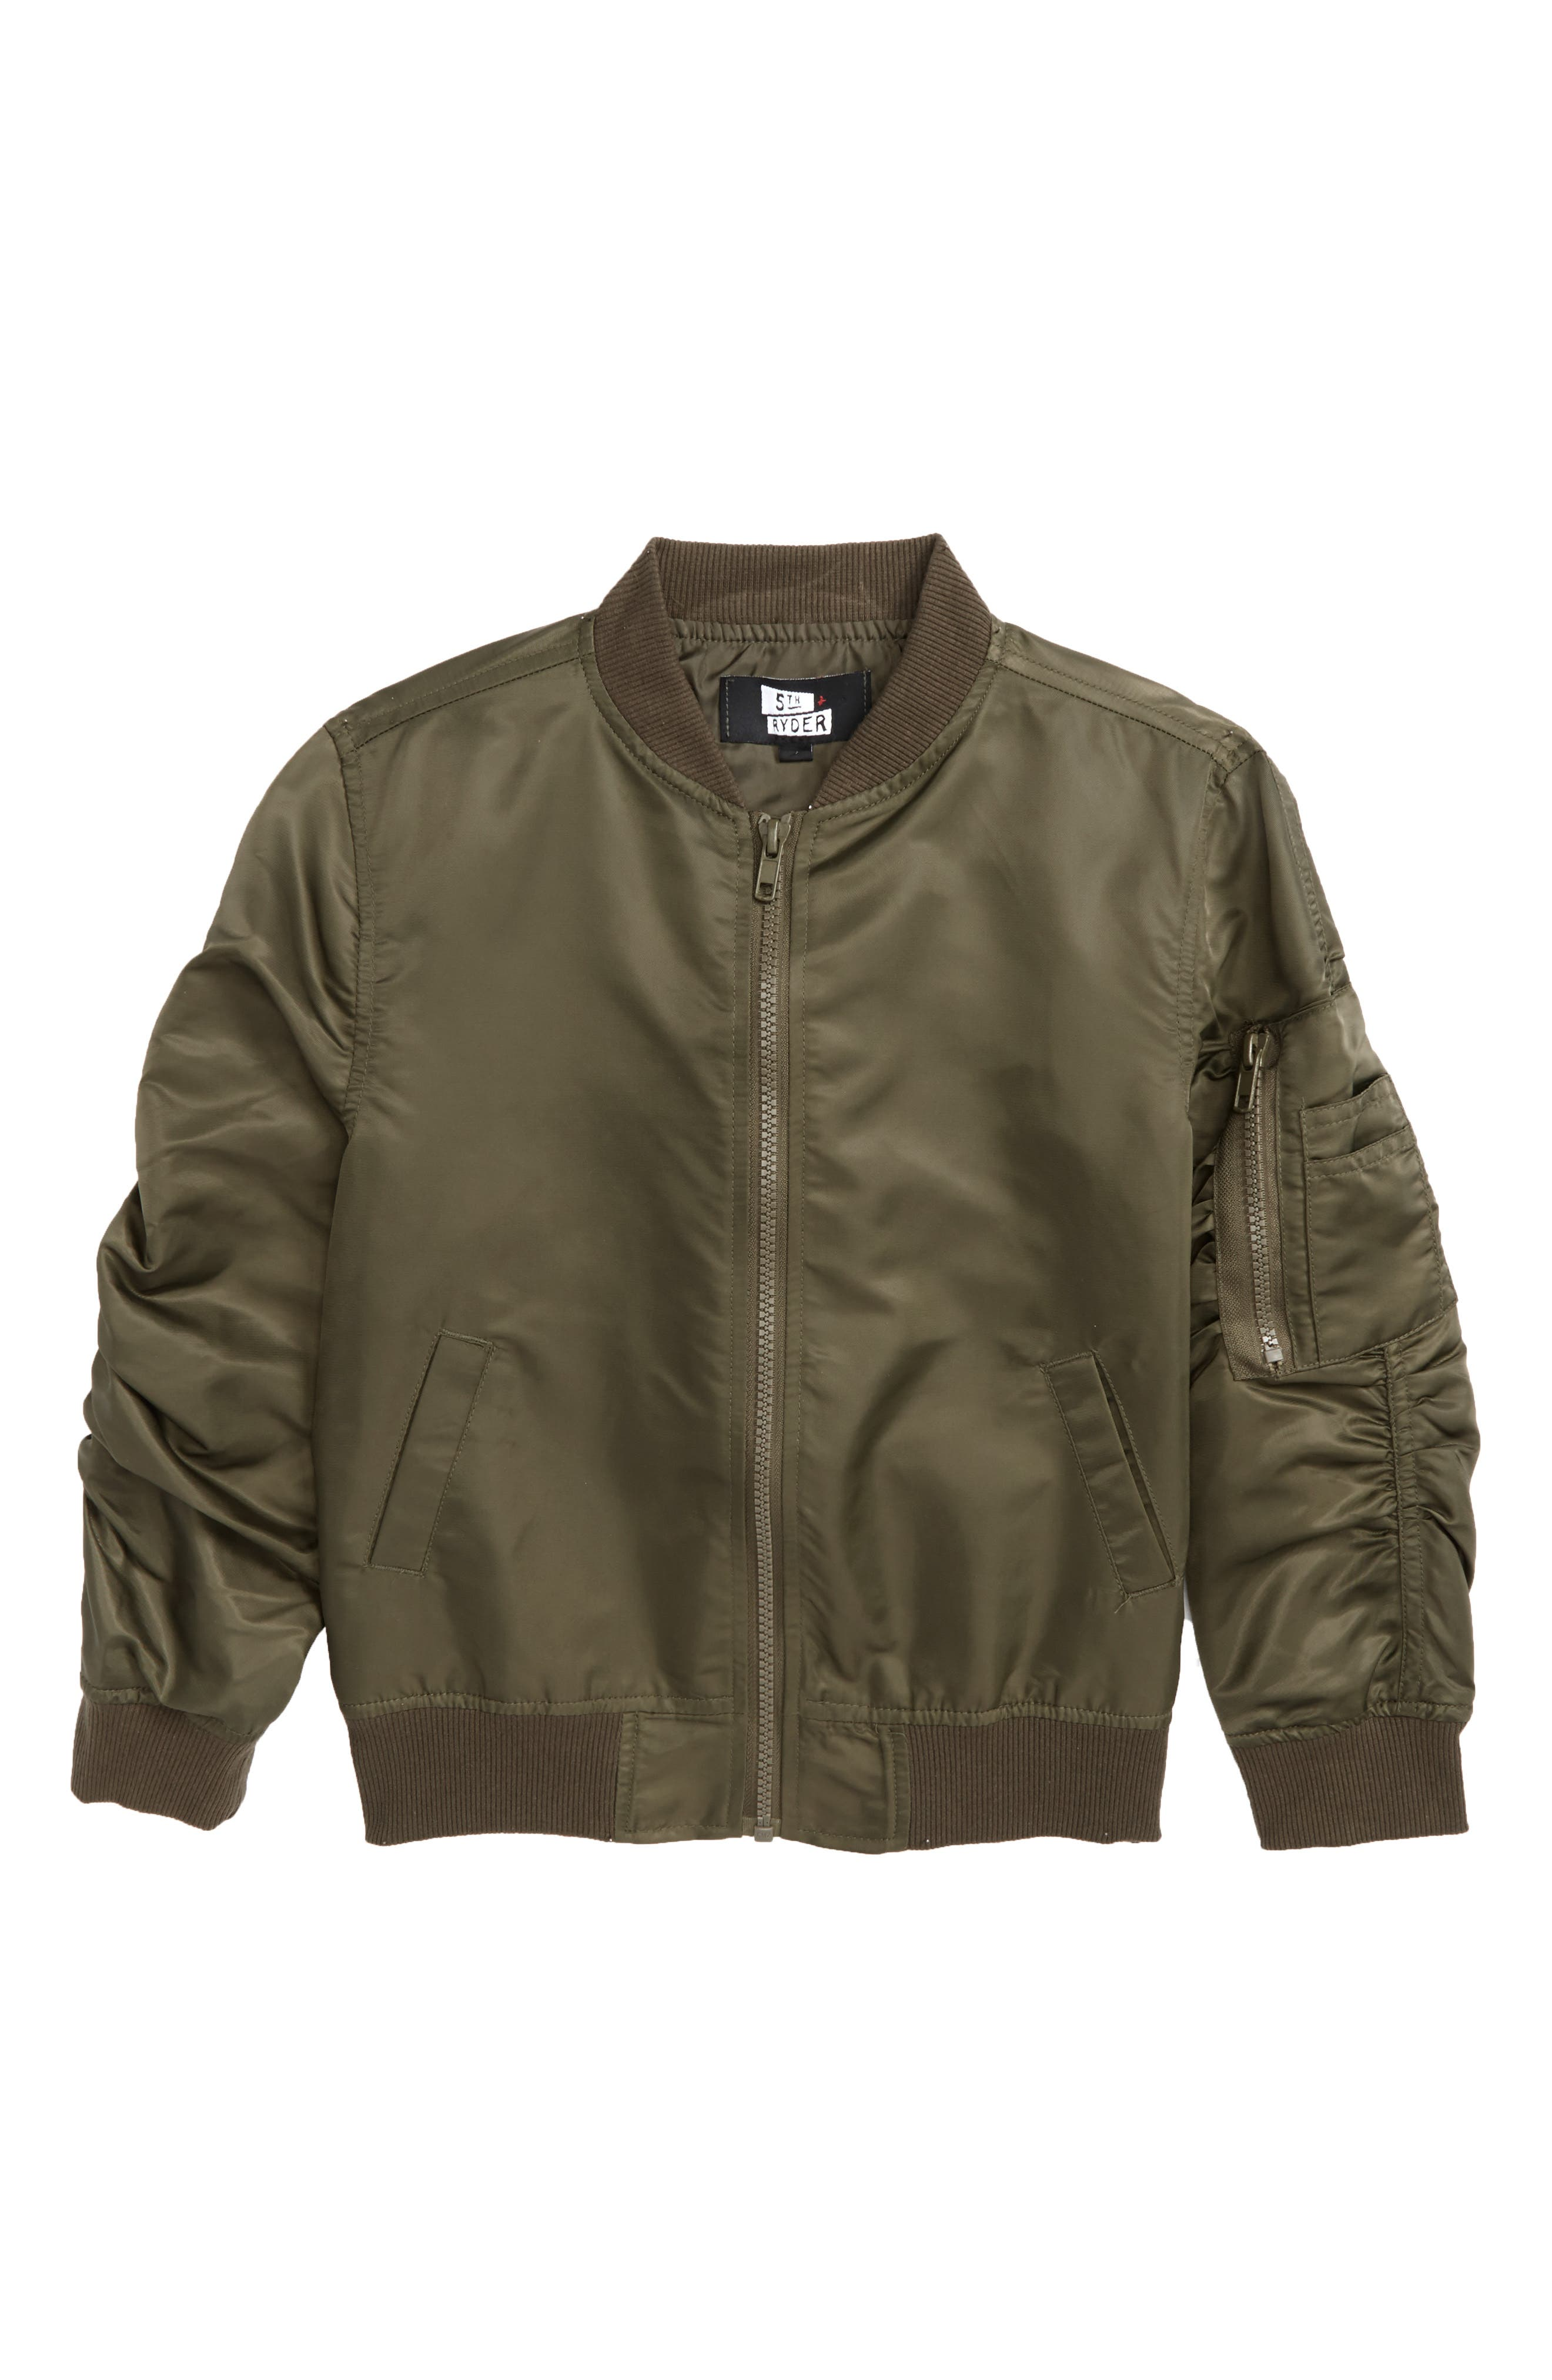 5th and Ryder Bomber Jacket (Little Boys & Big Boys)